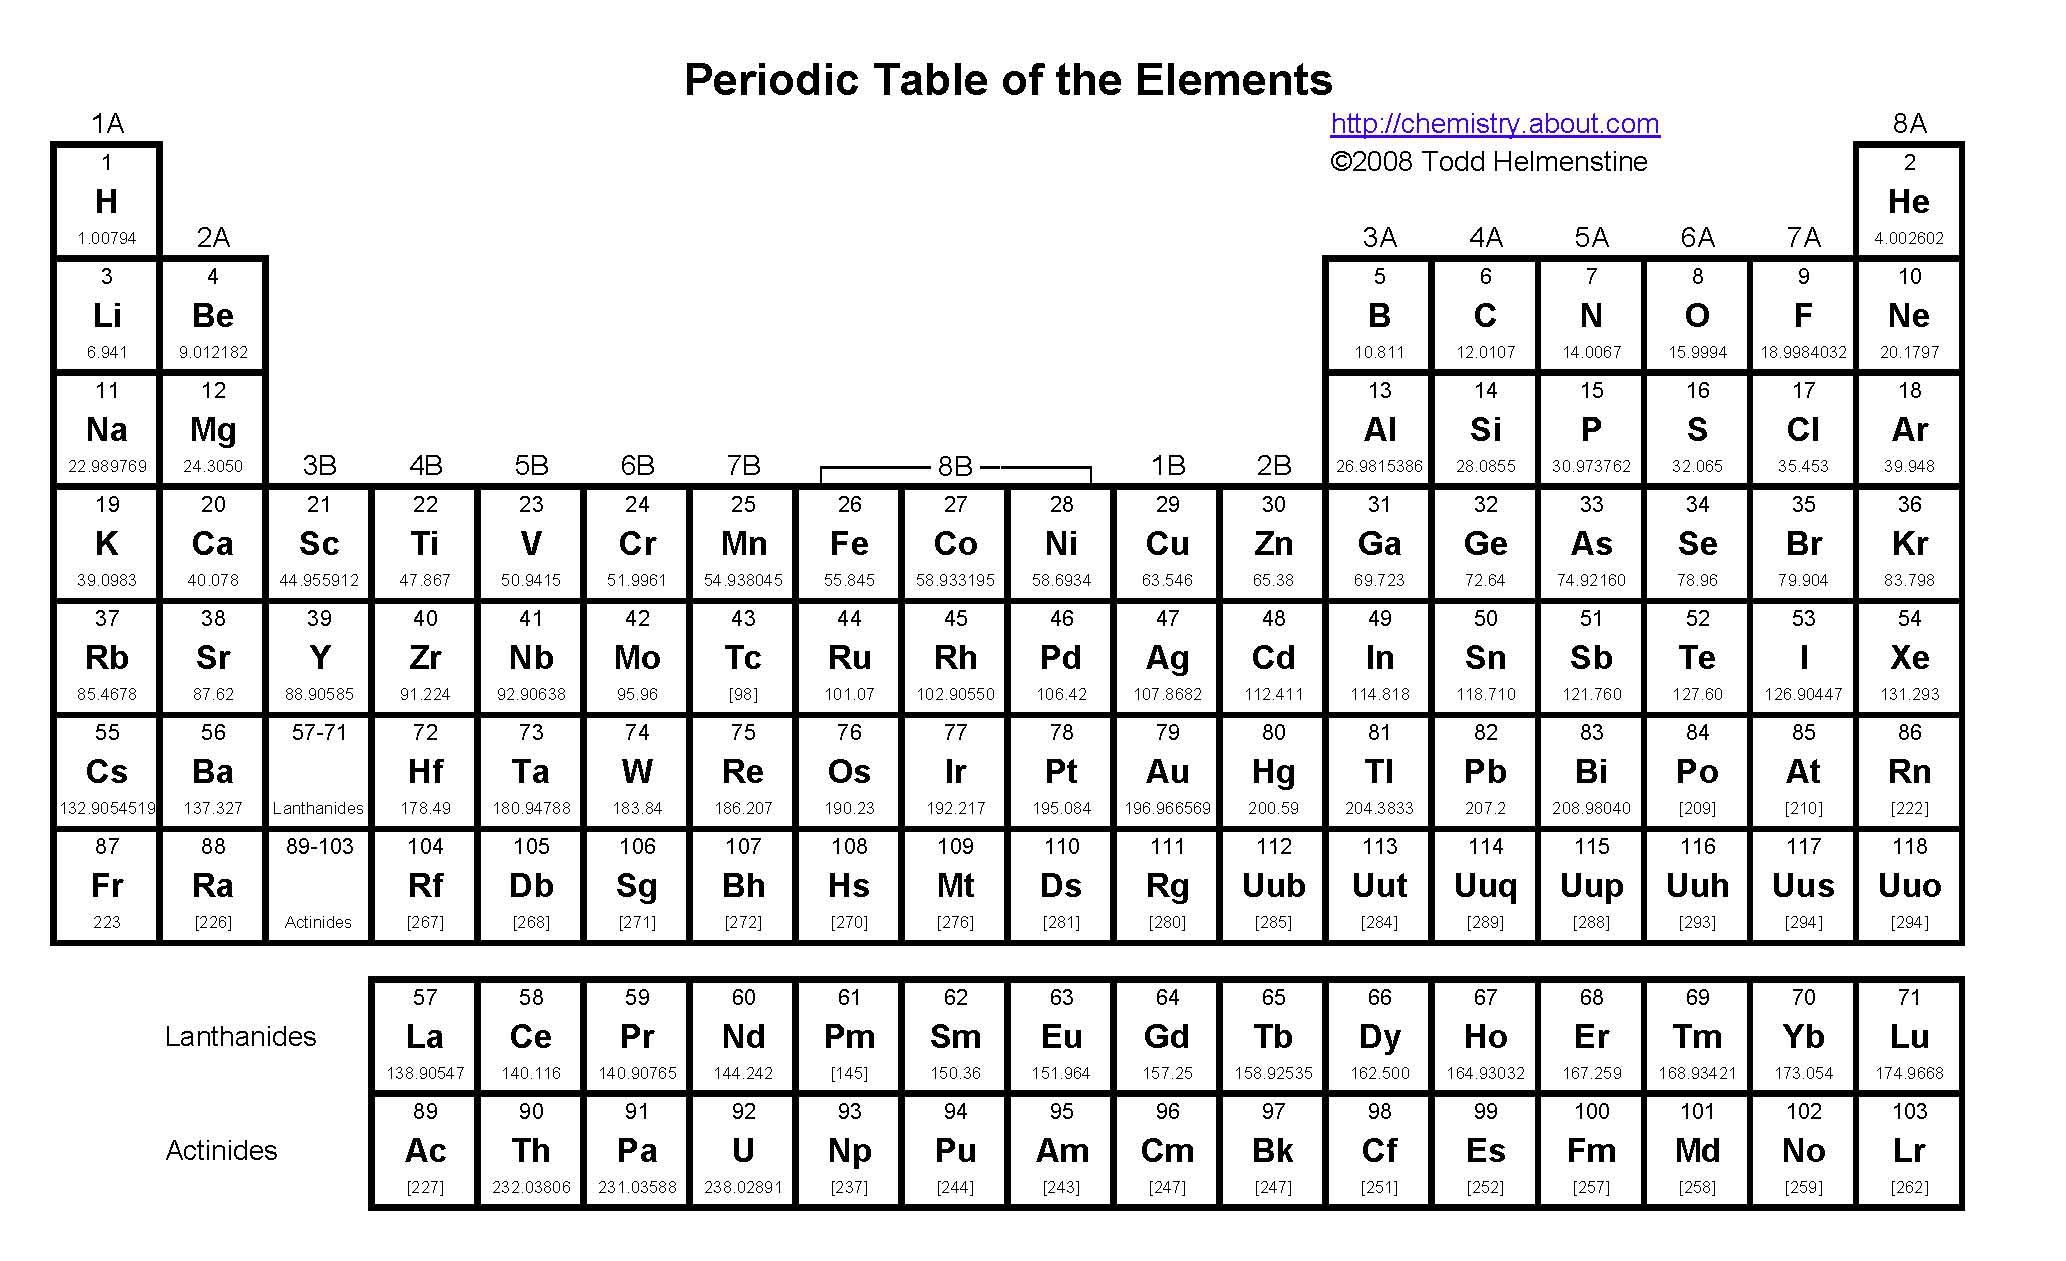 Metallic character properties and trends colored periodic tables show element groups at a glance which are elements that share common gamestrikefo Gallery